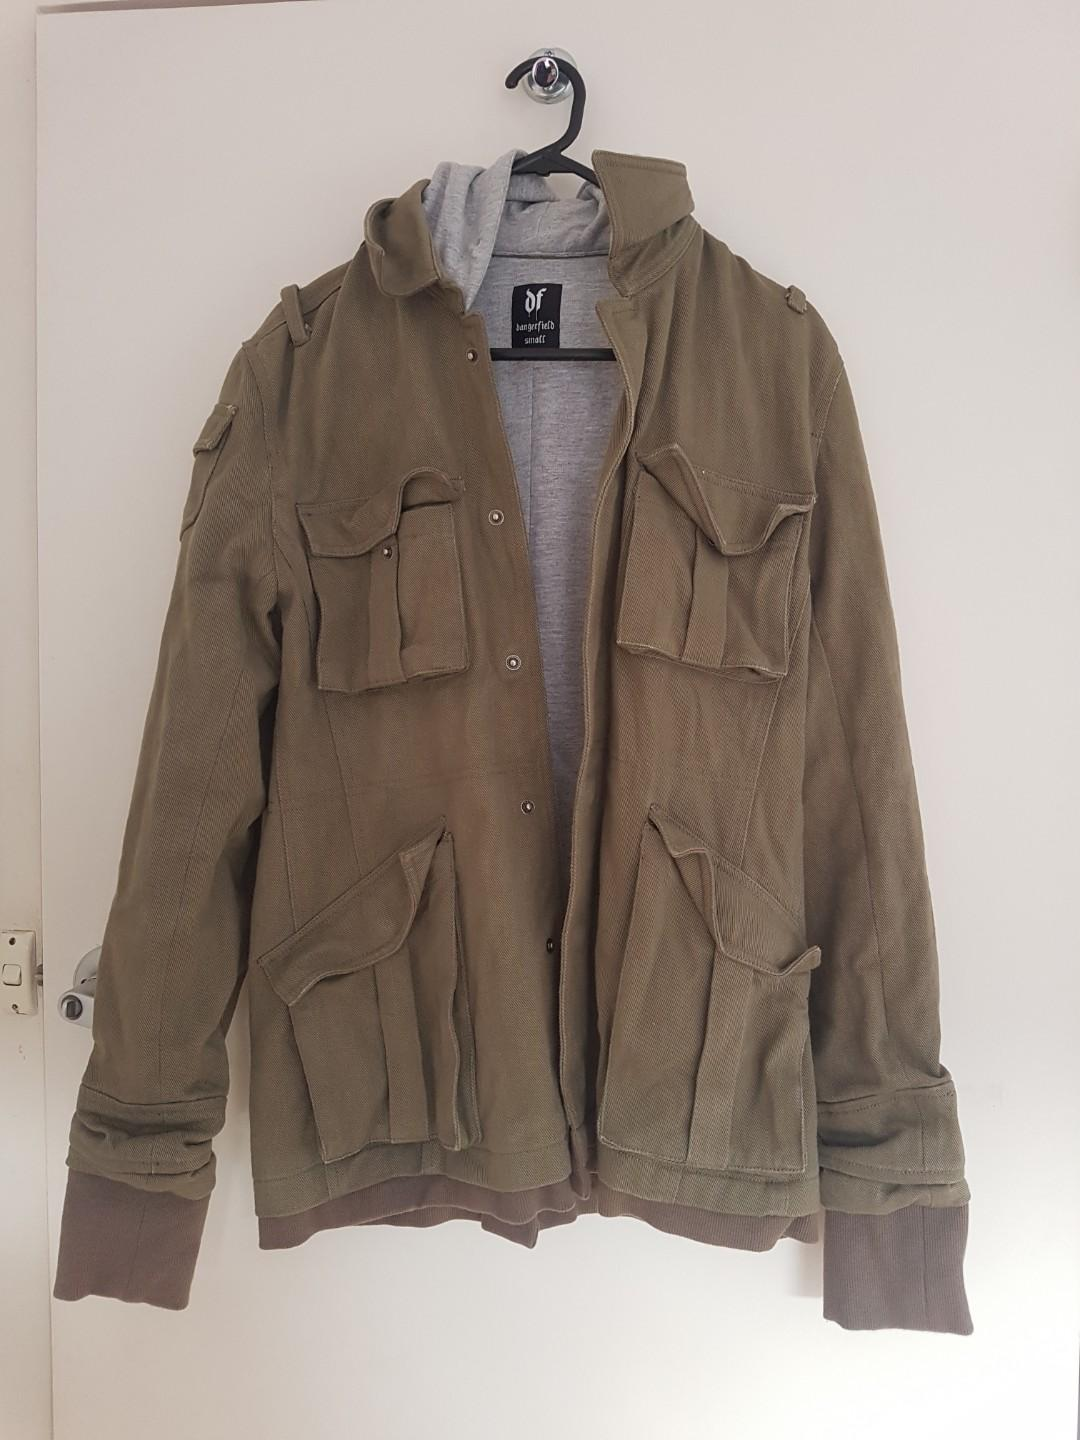 Dangerfield Jacket size S